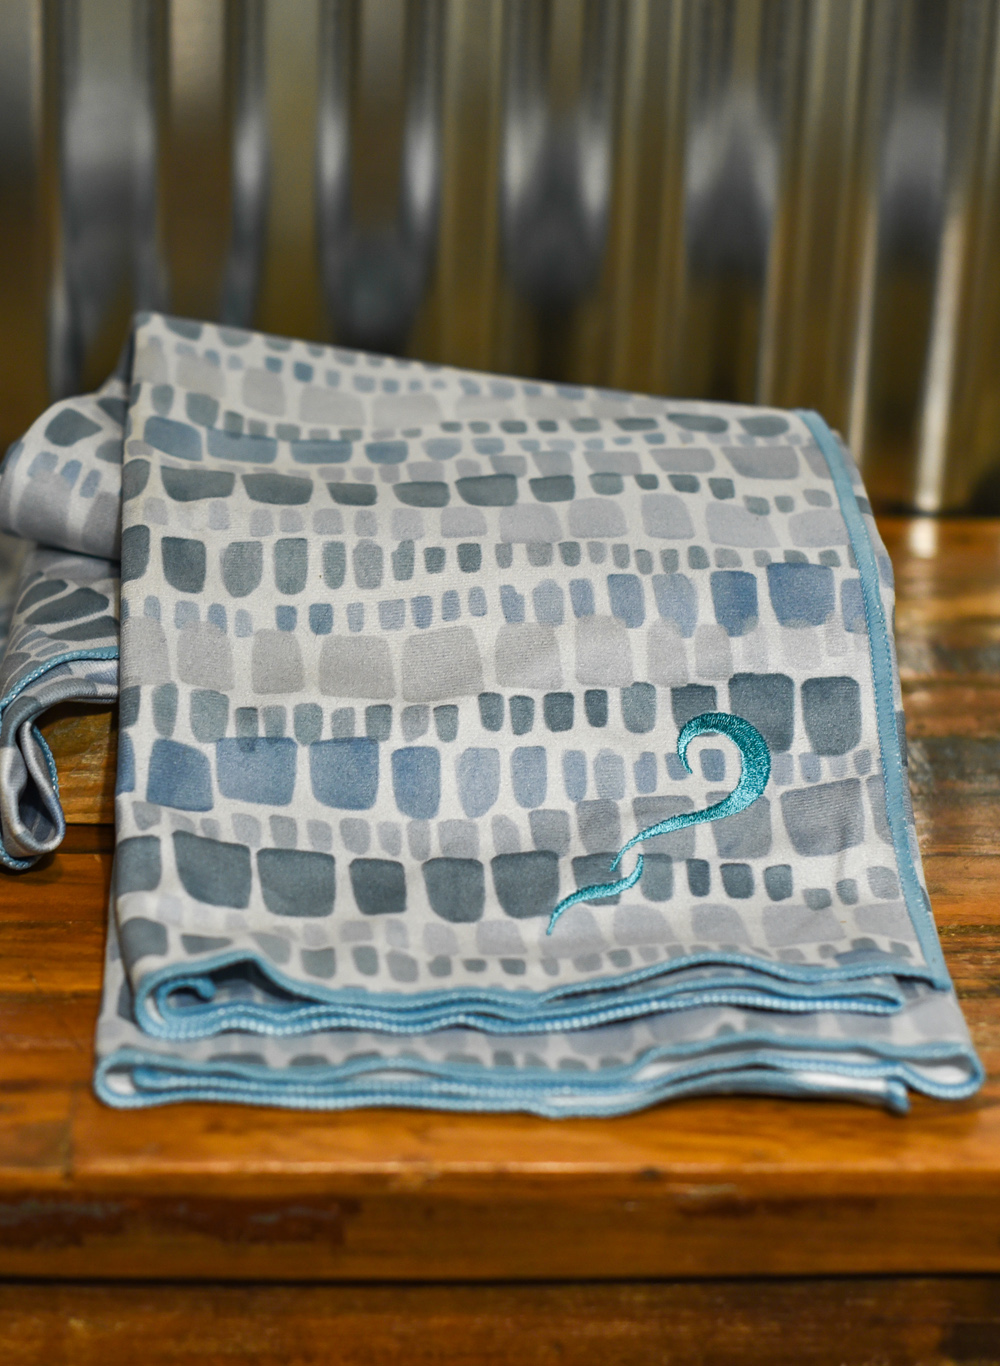 Embroidered with TYC wave, yogi toes Patina Squares towel